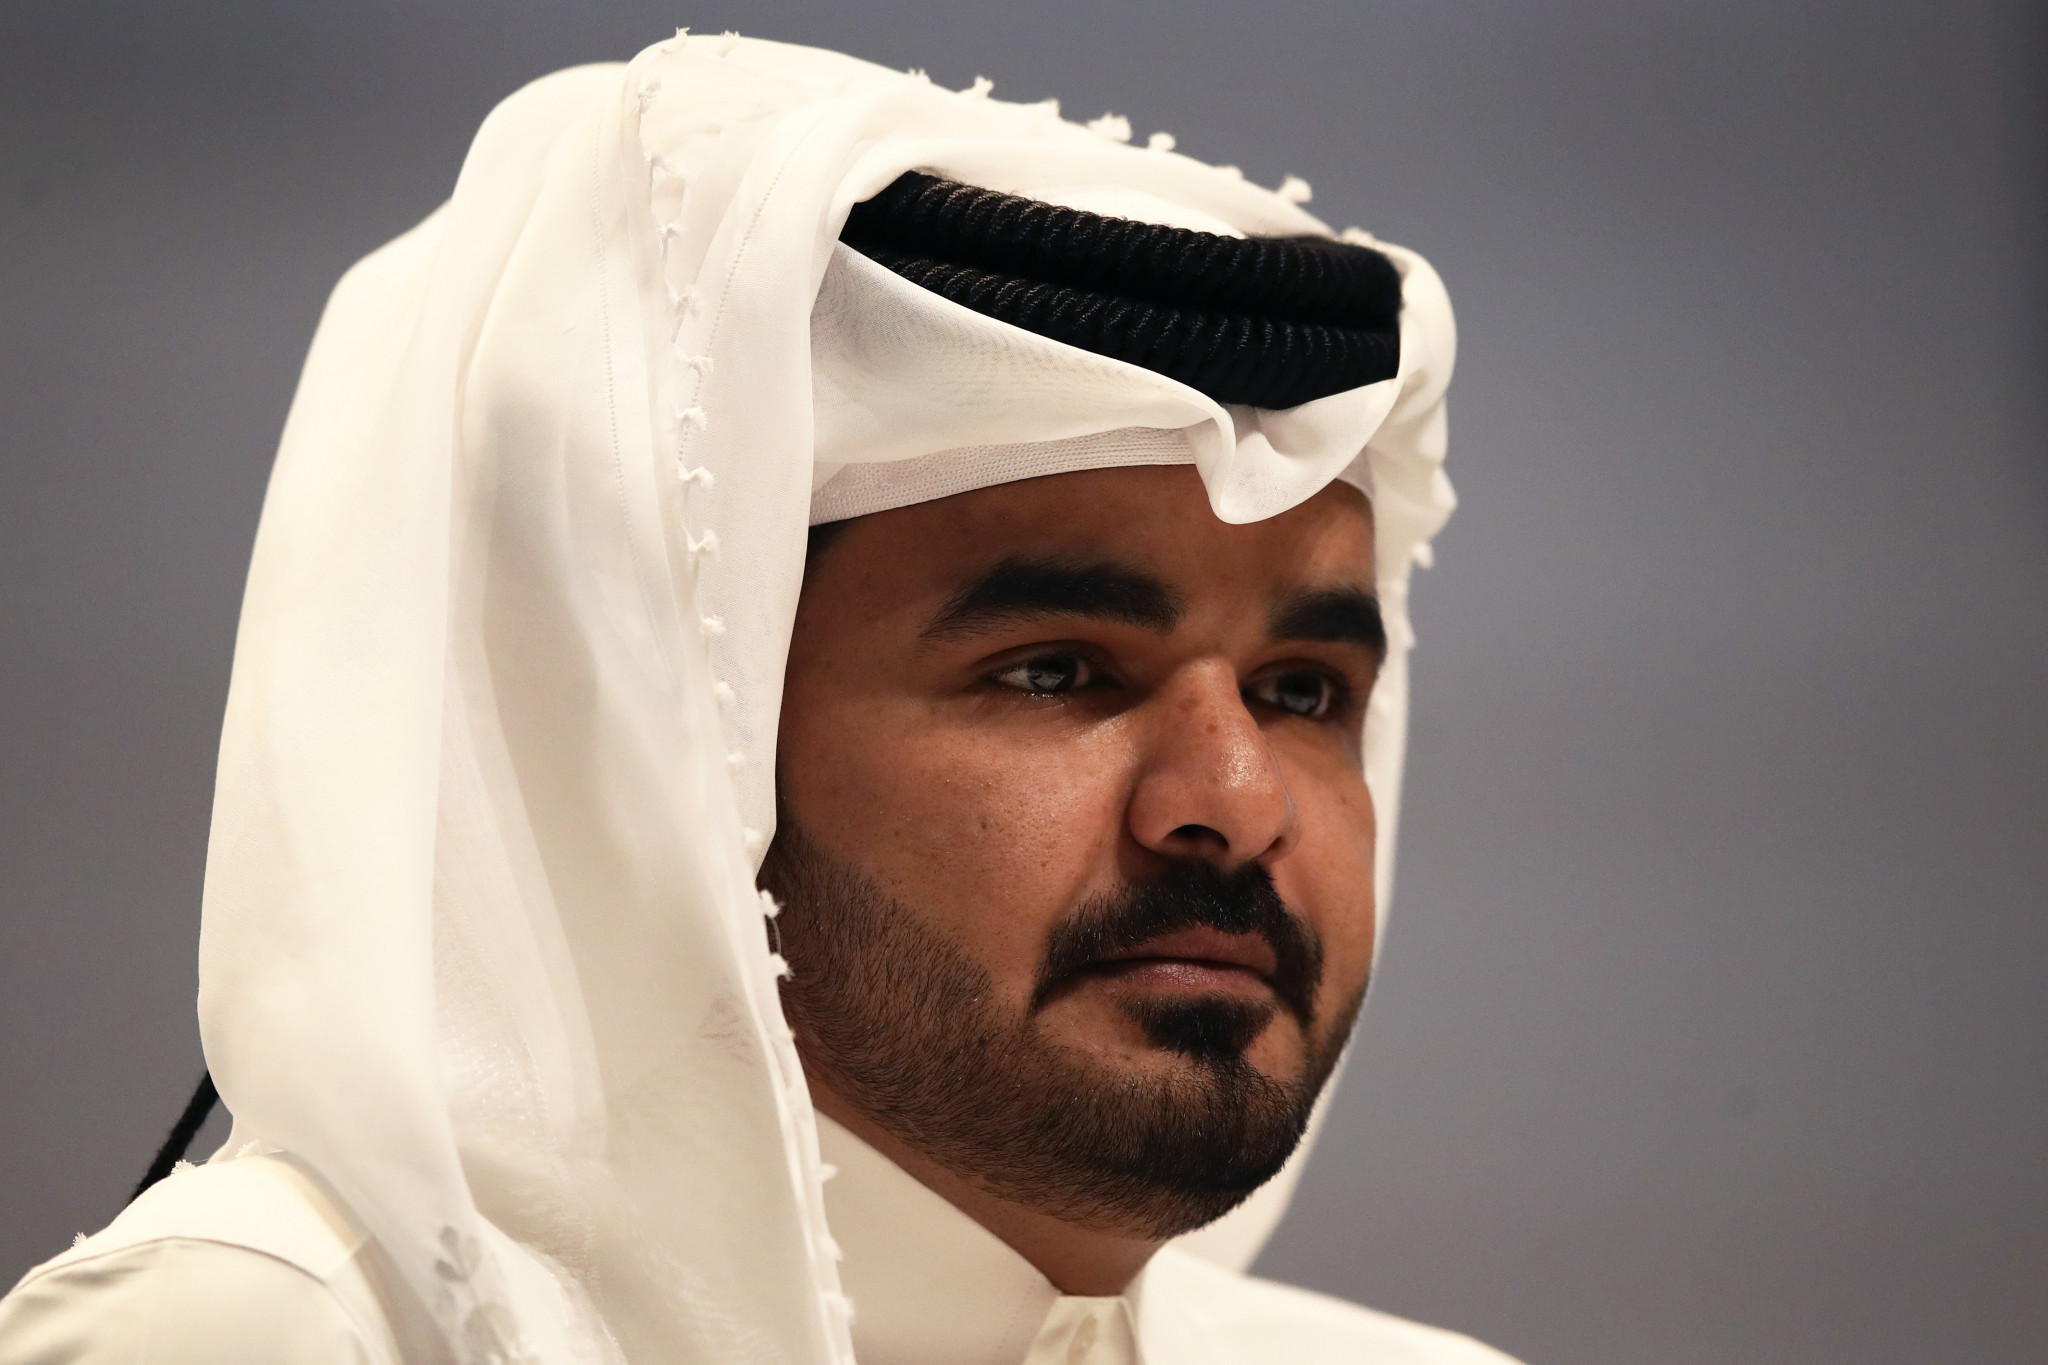 QOC President Sheikh Joaan Bin Hamad Bin Khalifa Al-Thani said hosting the 2032 Olympic and Paralympic Games remained the